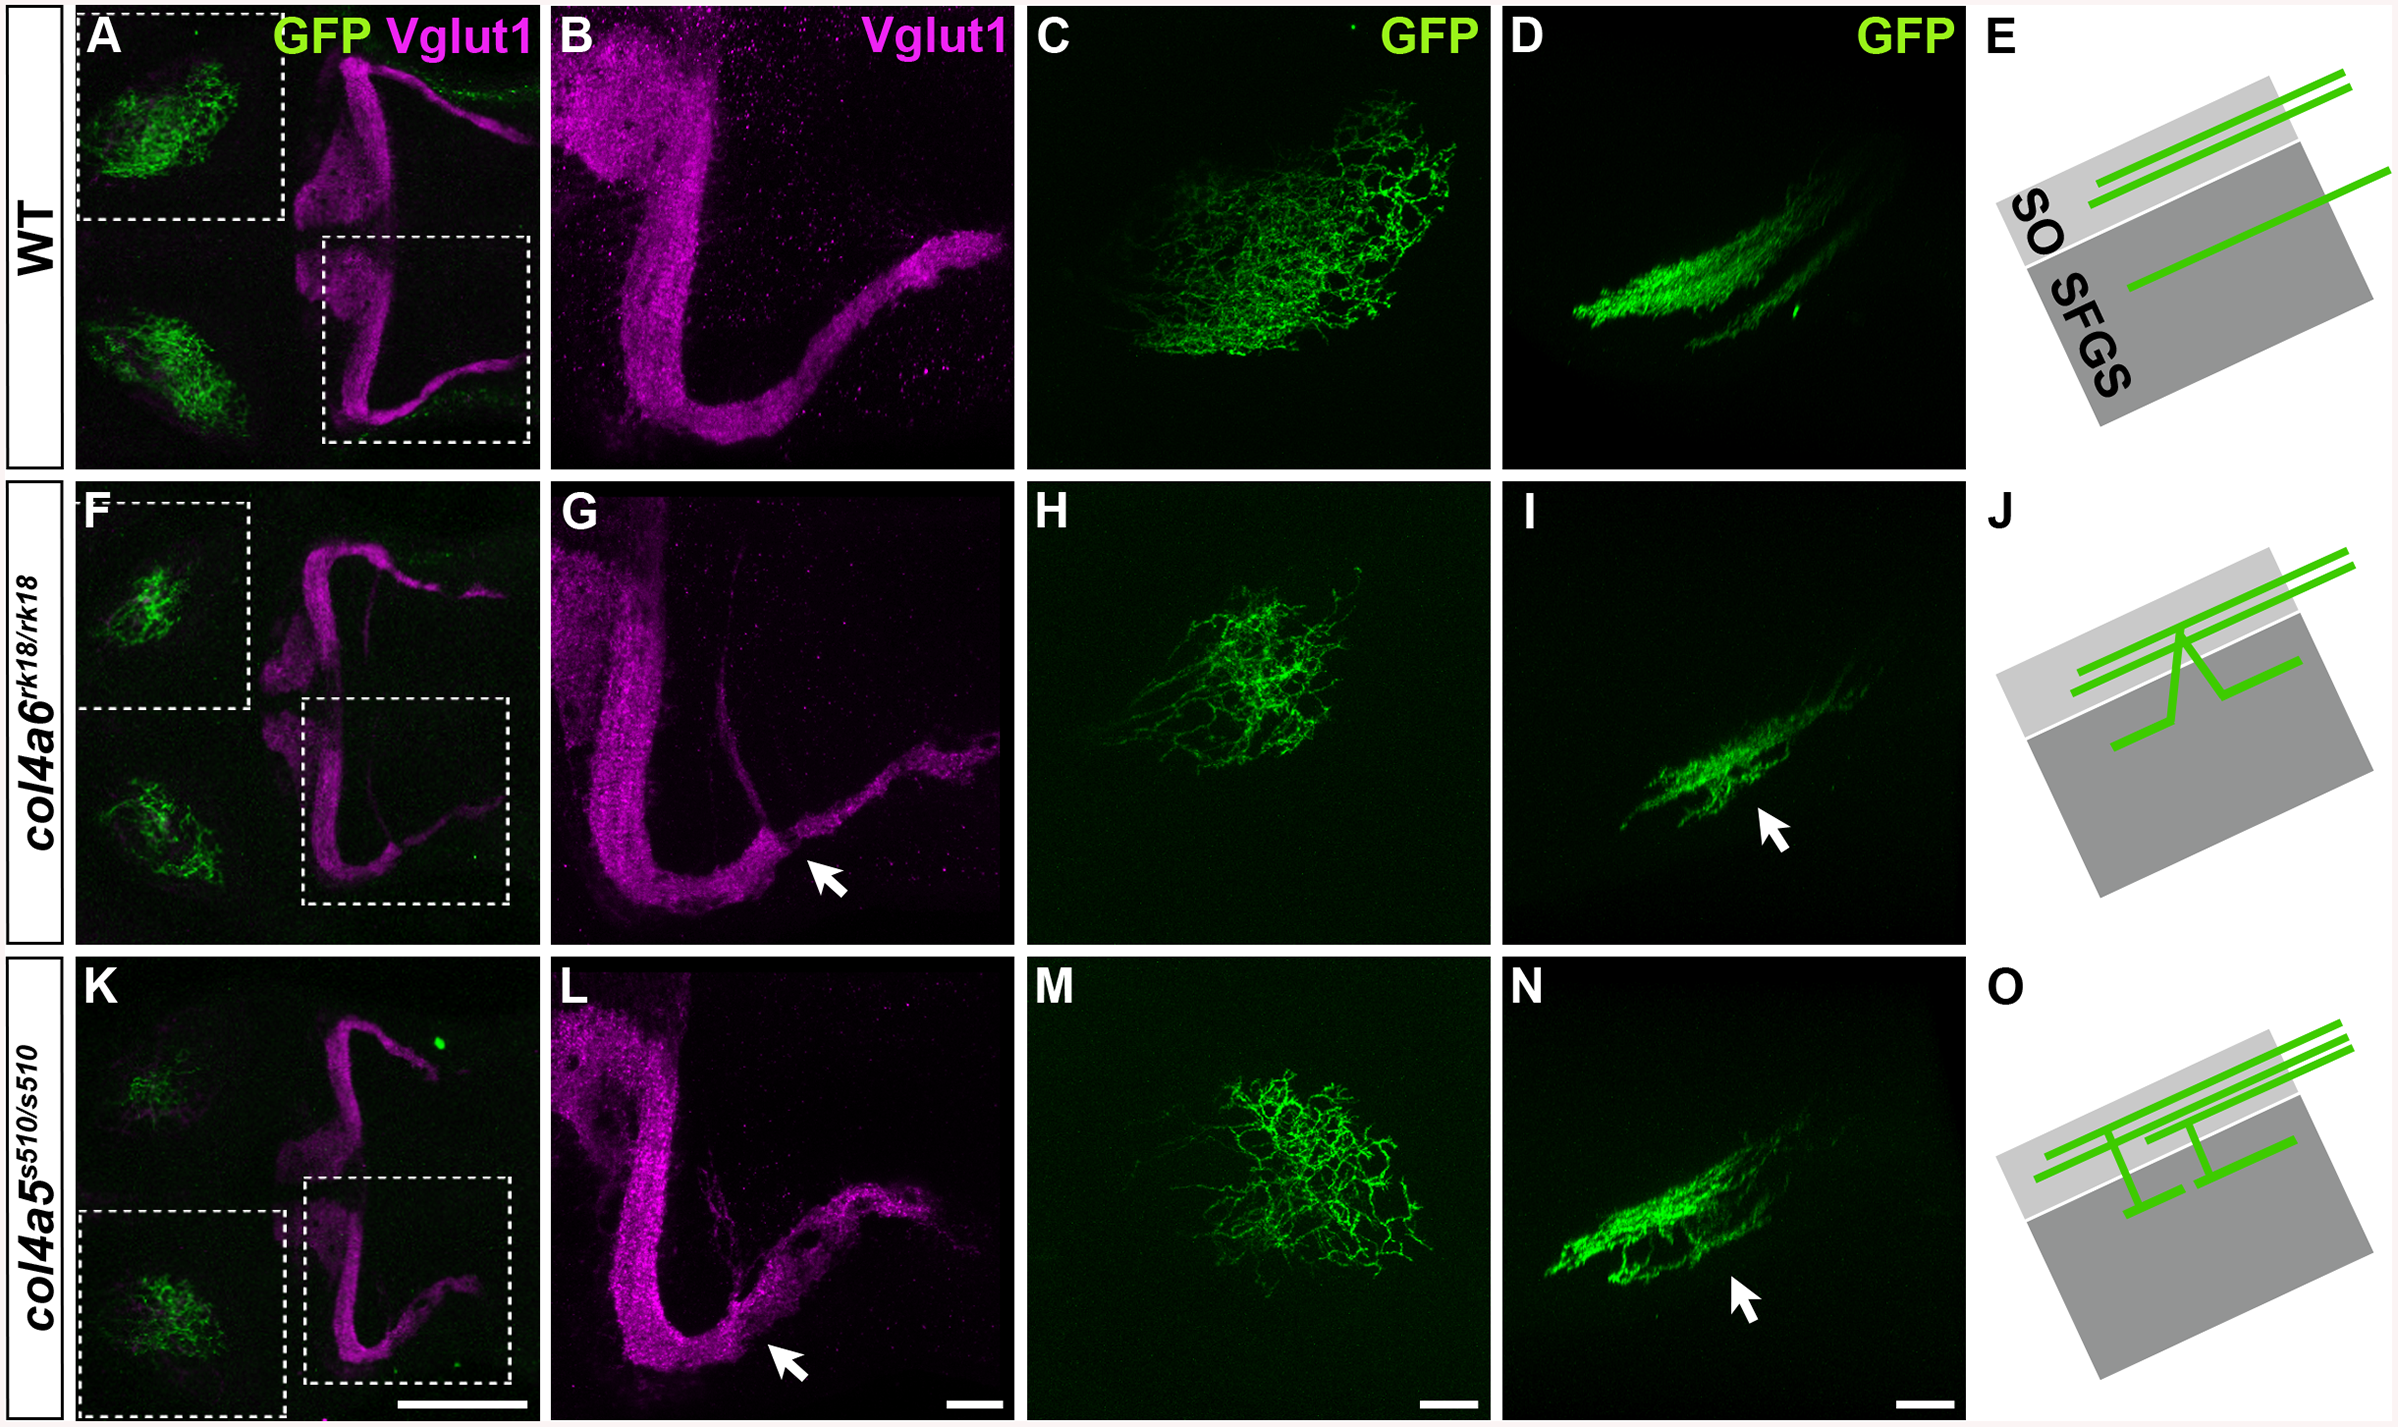 The Col4a5 and Col4a6 complex plays a role in the axogenesis of GCs and RGCs.